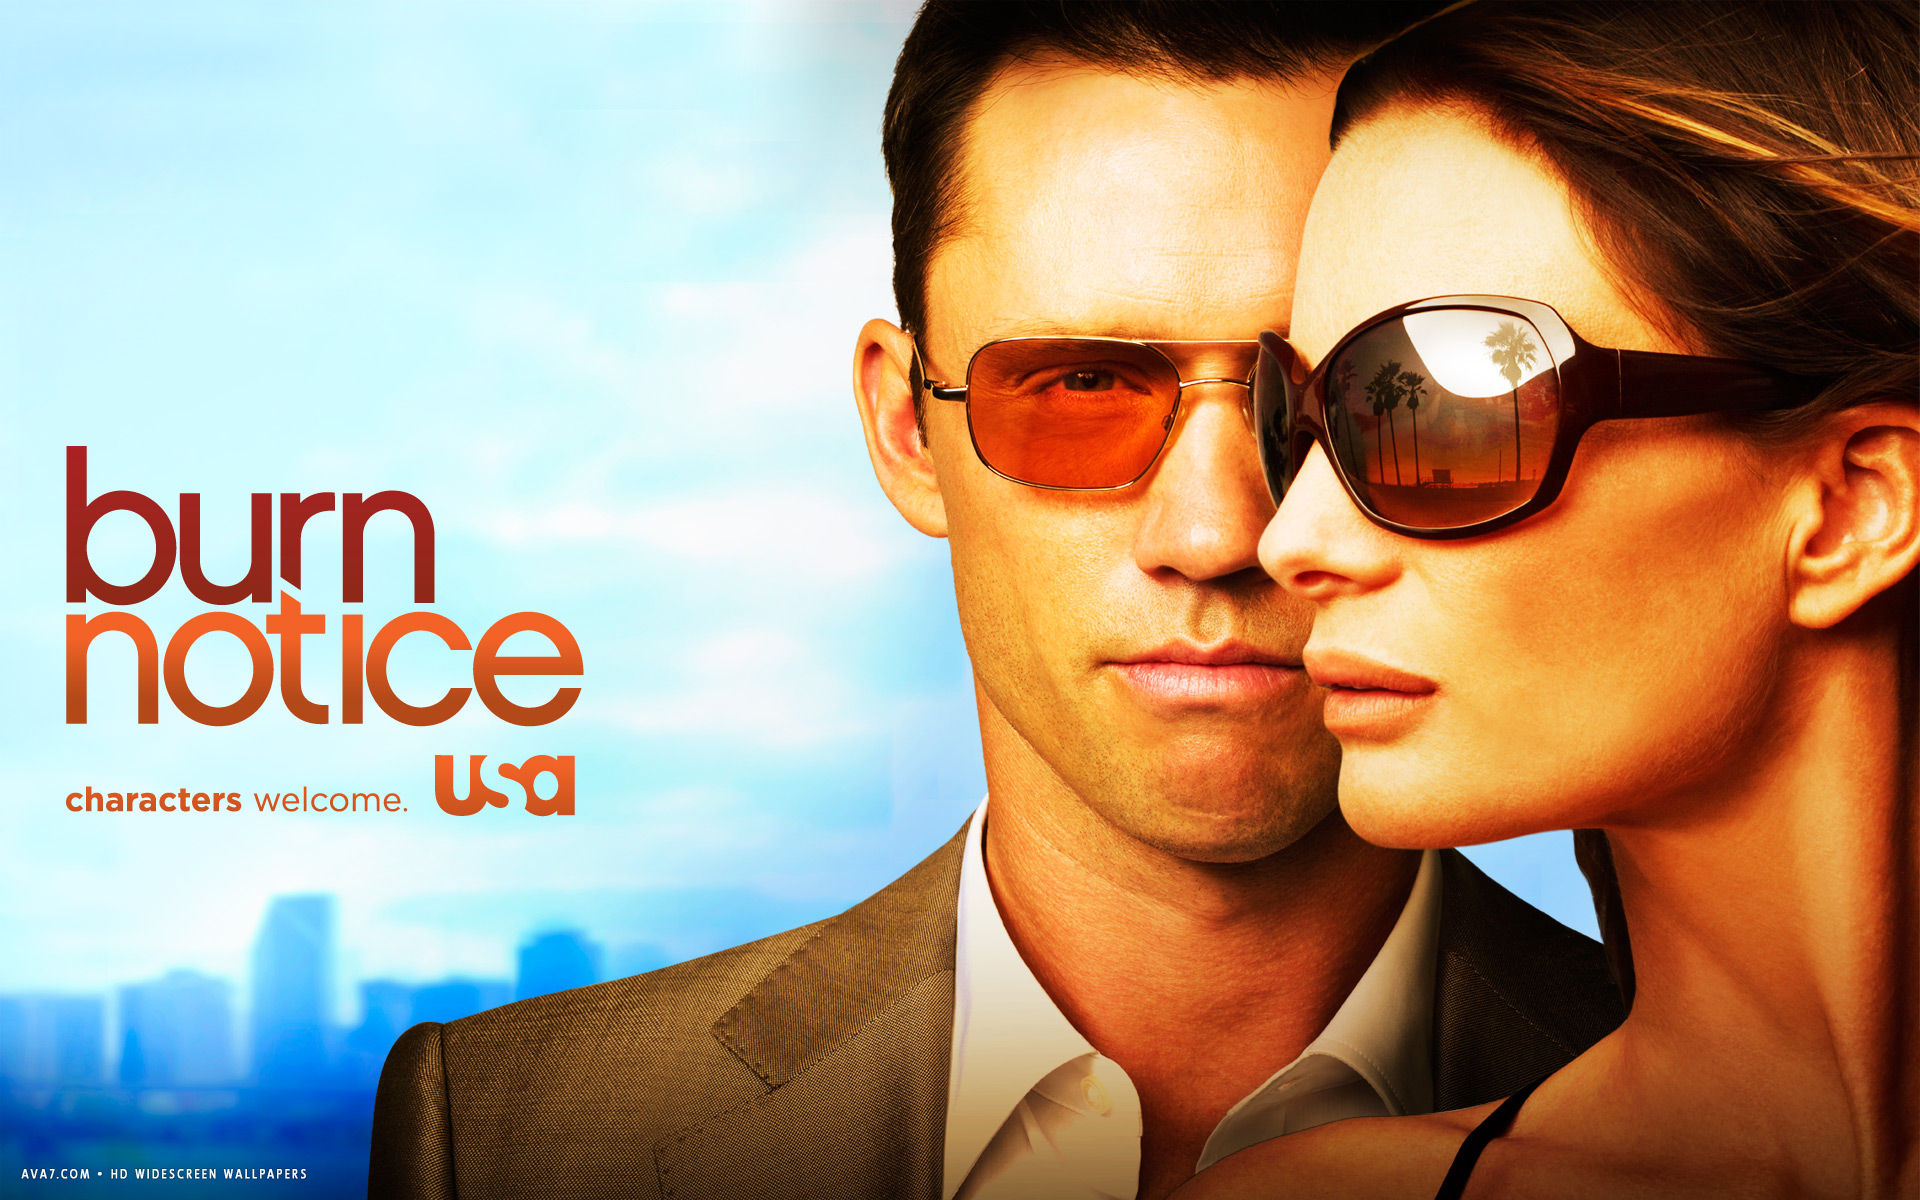 burn notice tv series show hd widescreen wallpaper